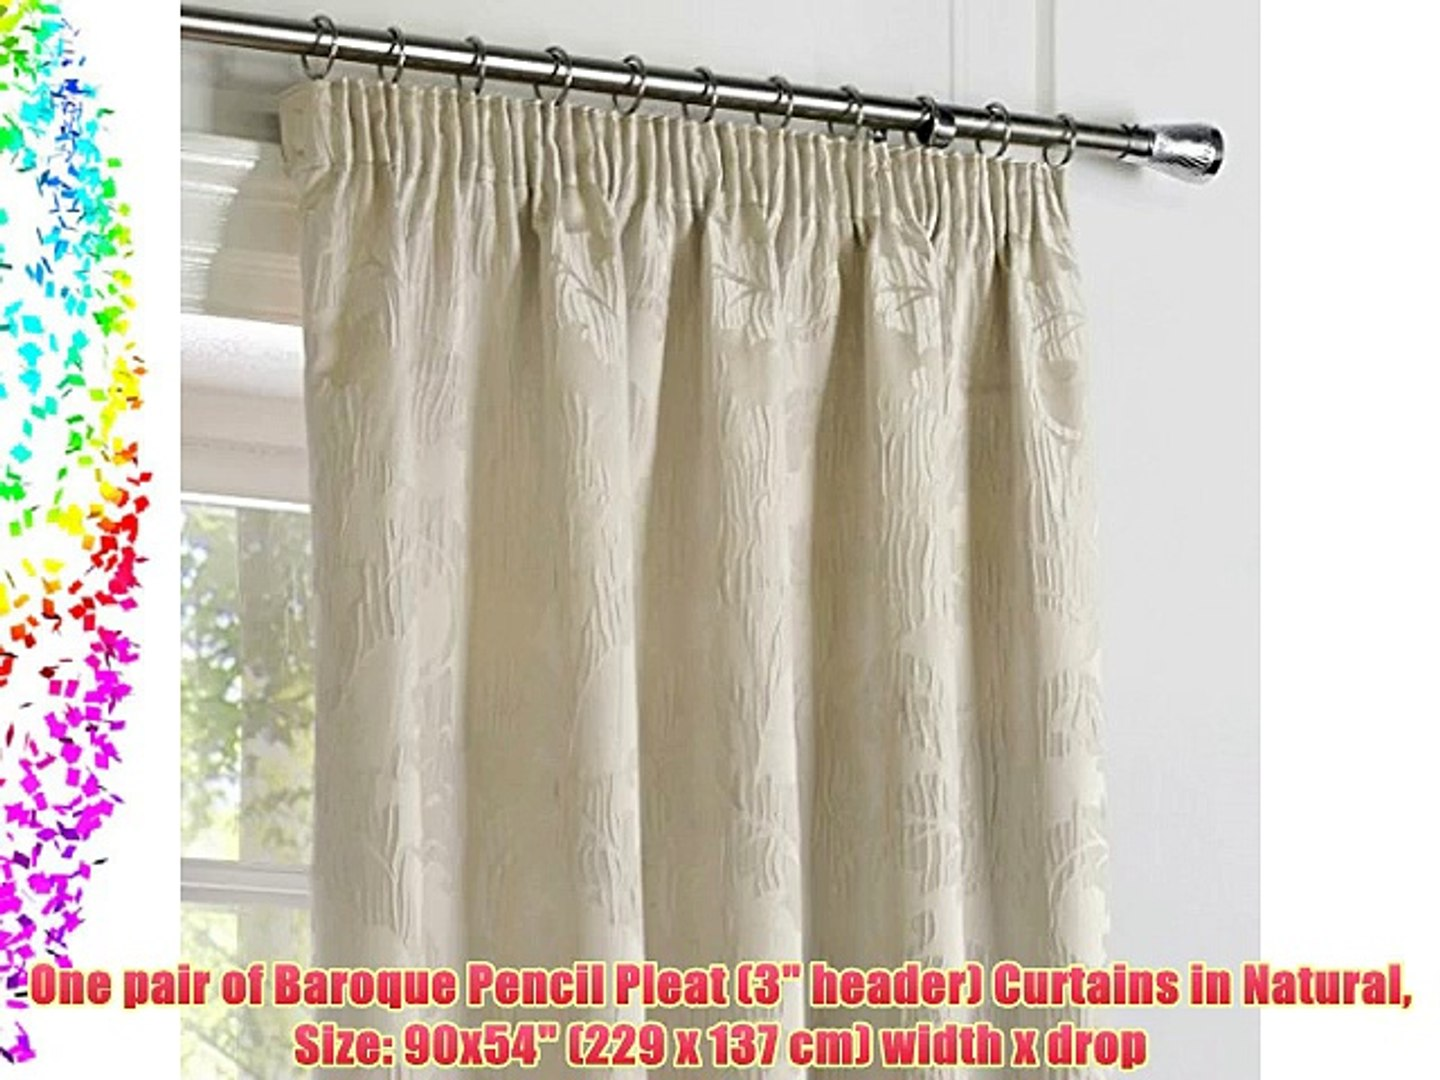 One pair of Baroque Pencil Pleat (3 header) Curtains in Natural Size: 90x54 (229 x 137 cm)